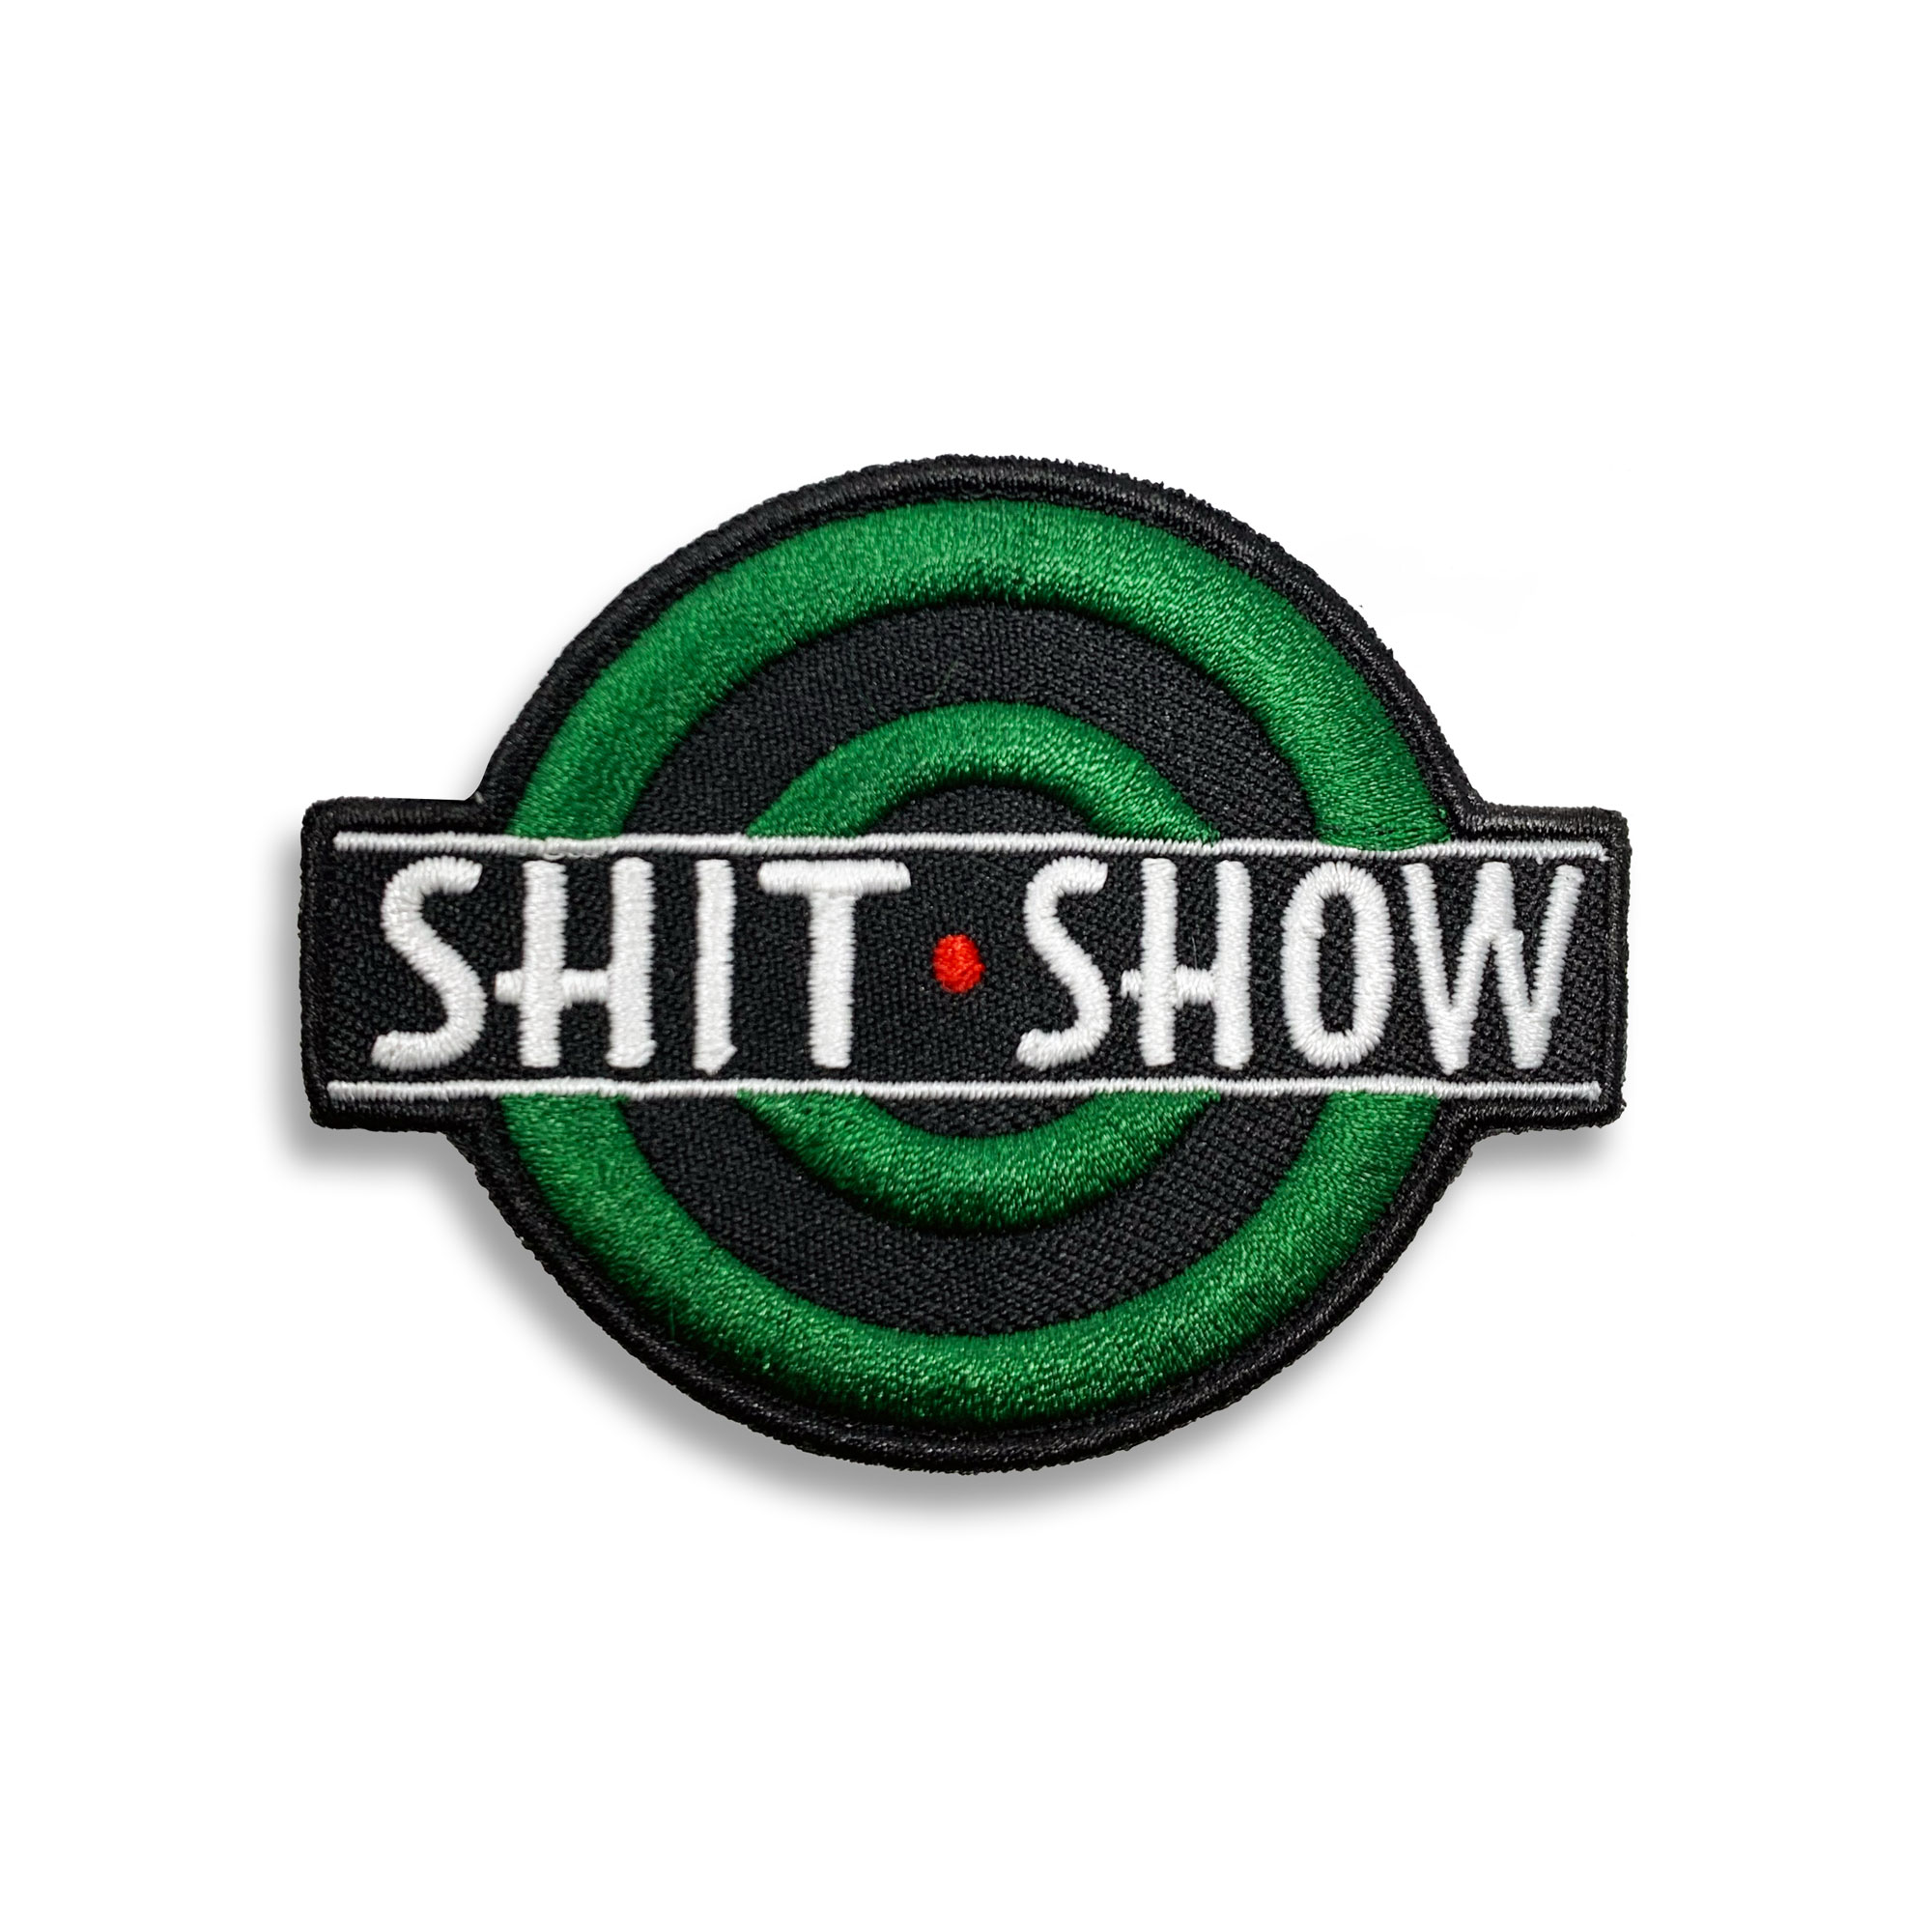 Patch - SHIT Show by Bad Attitude Dept